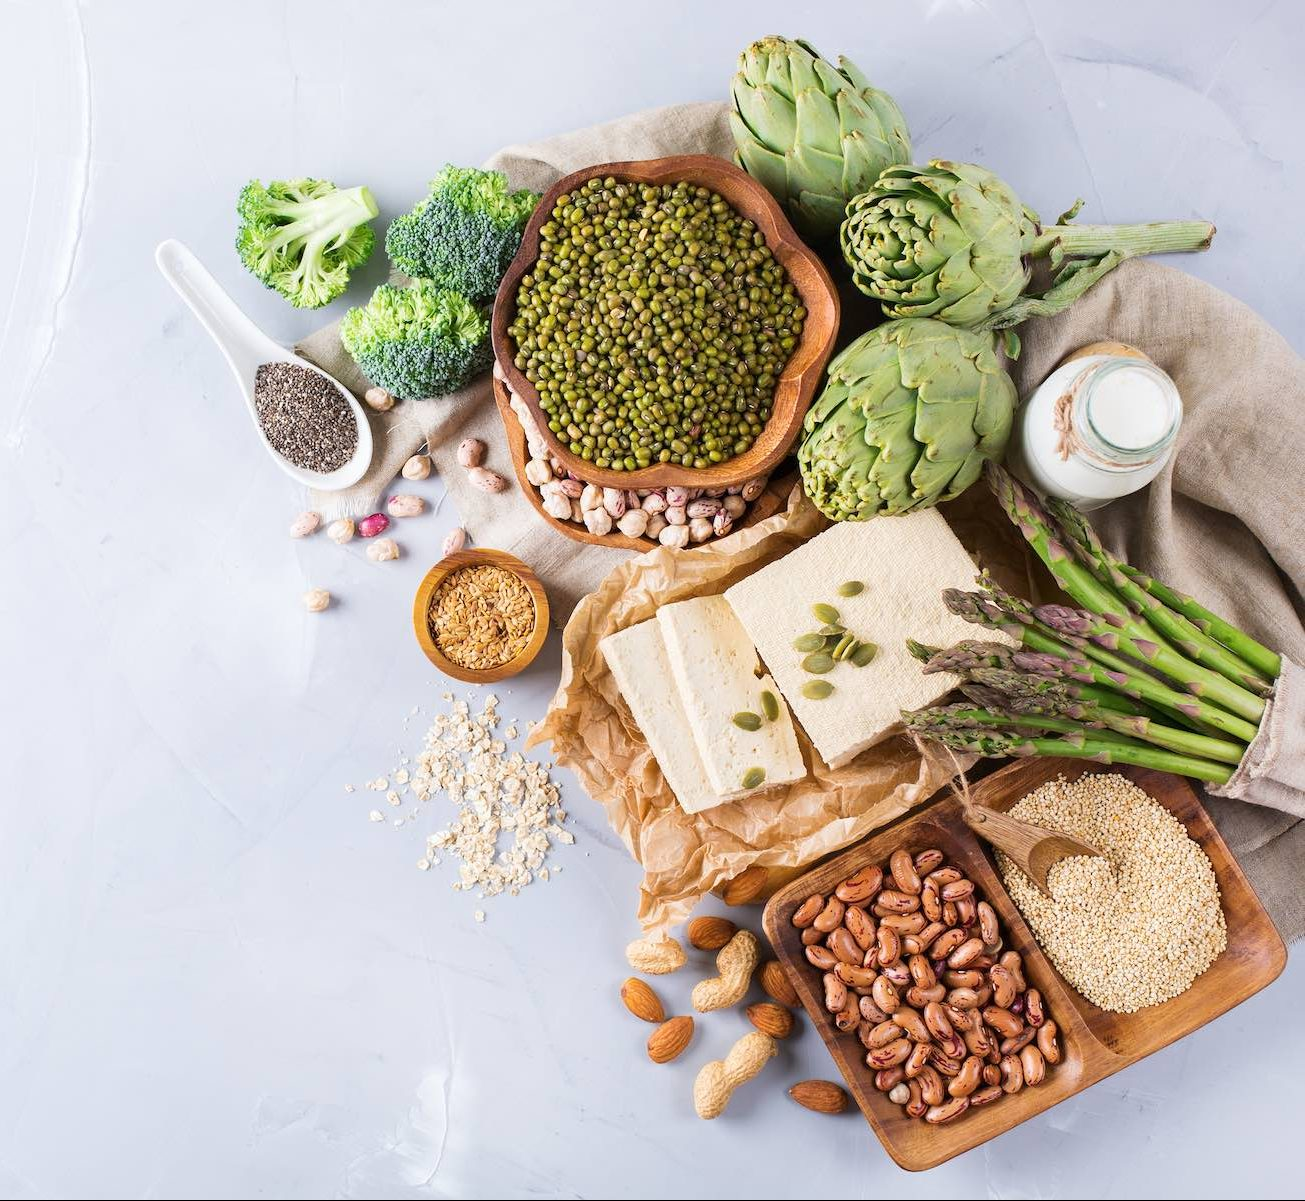 Assortment of healthy vegan protein source and body building food.